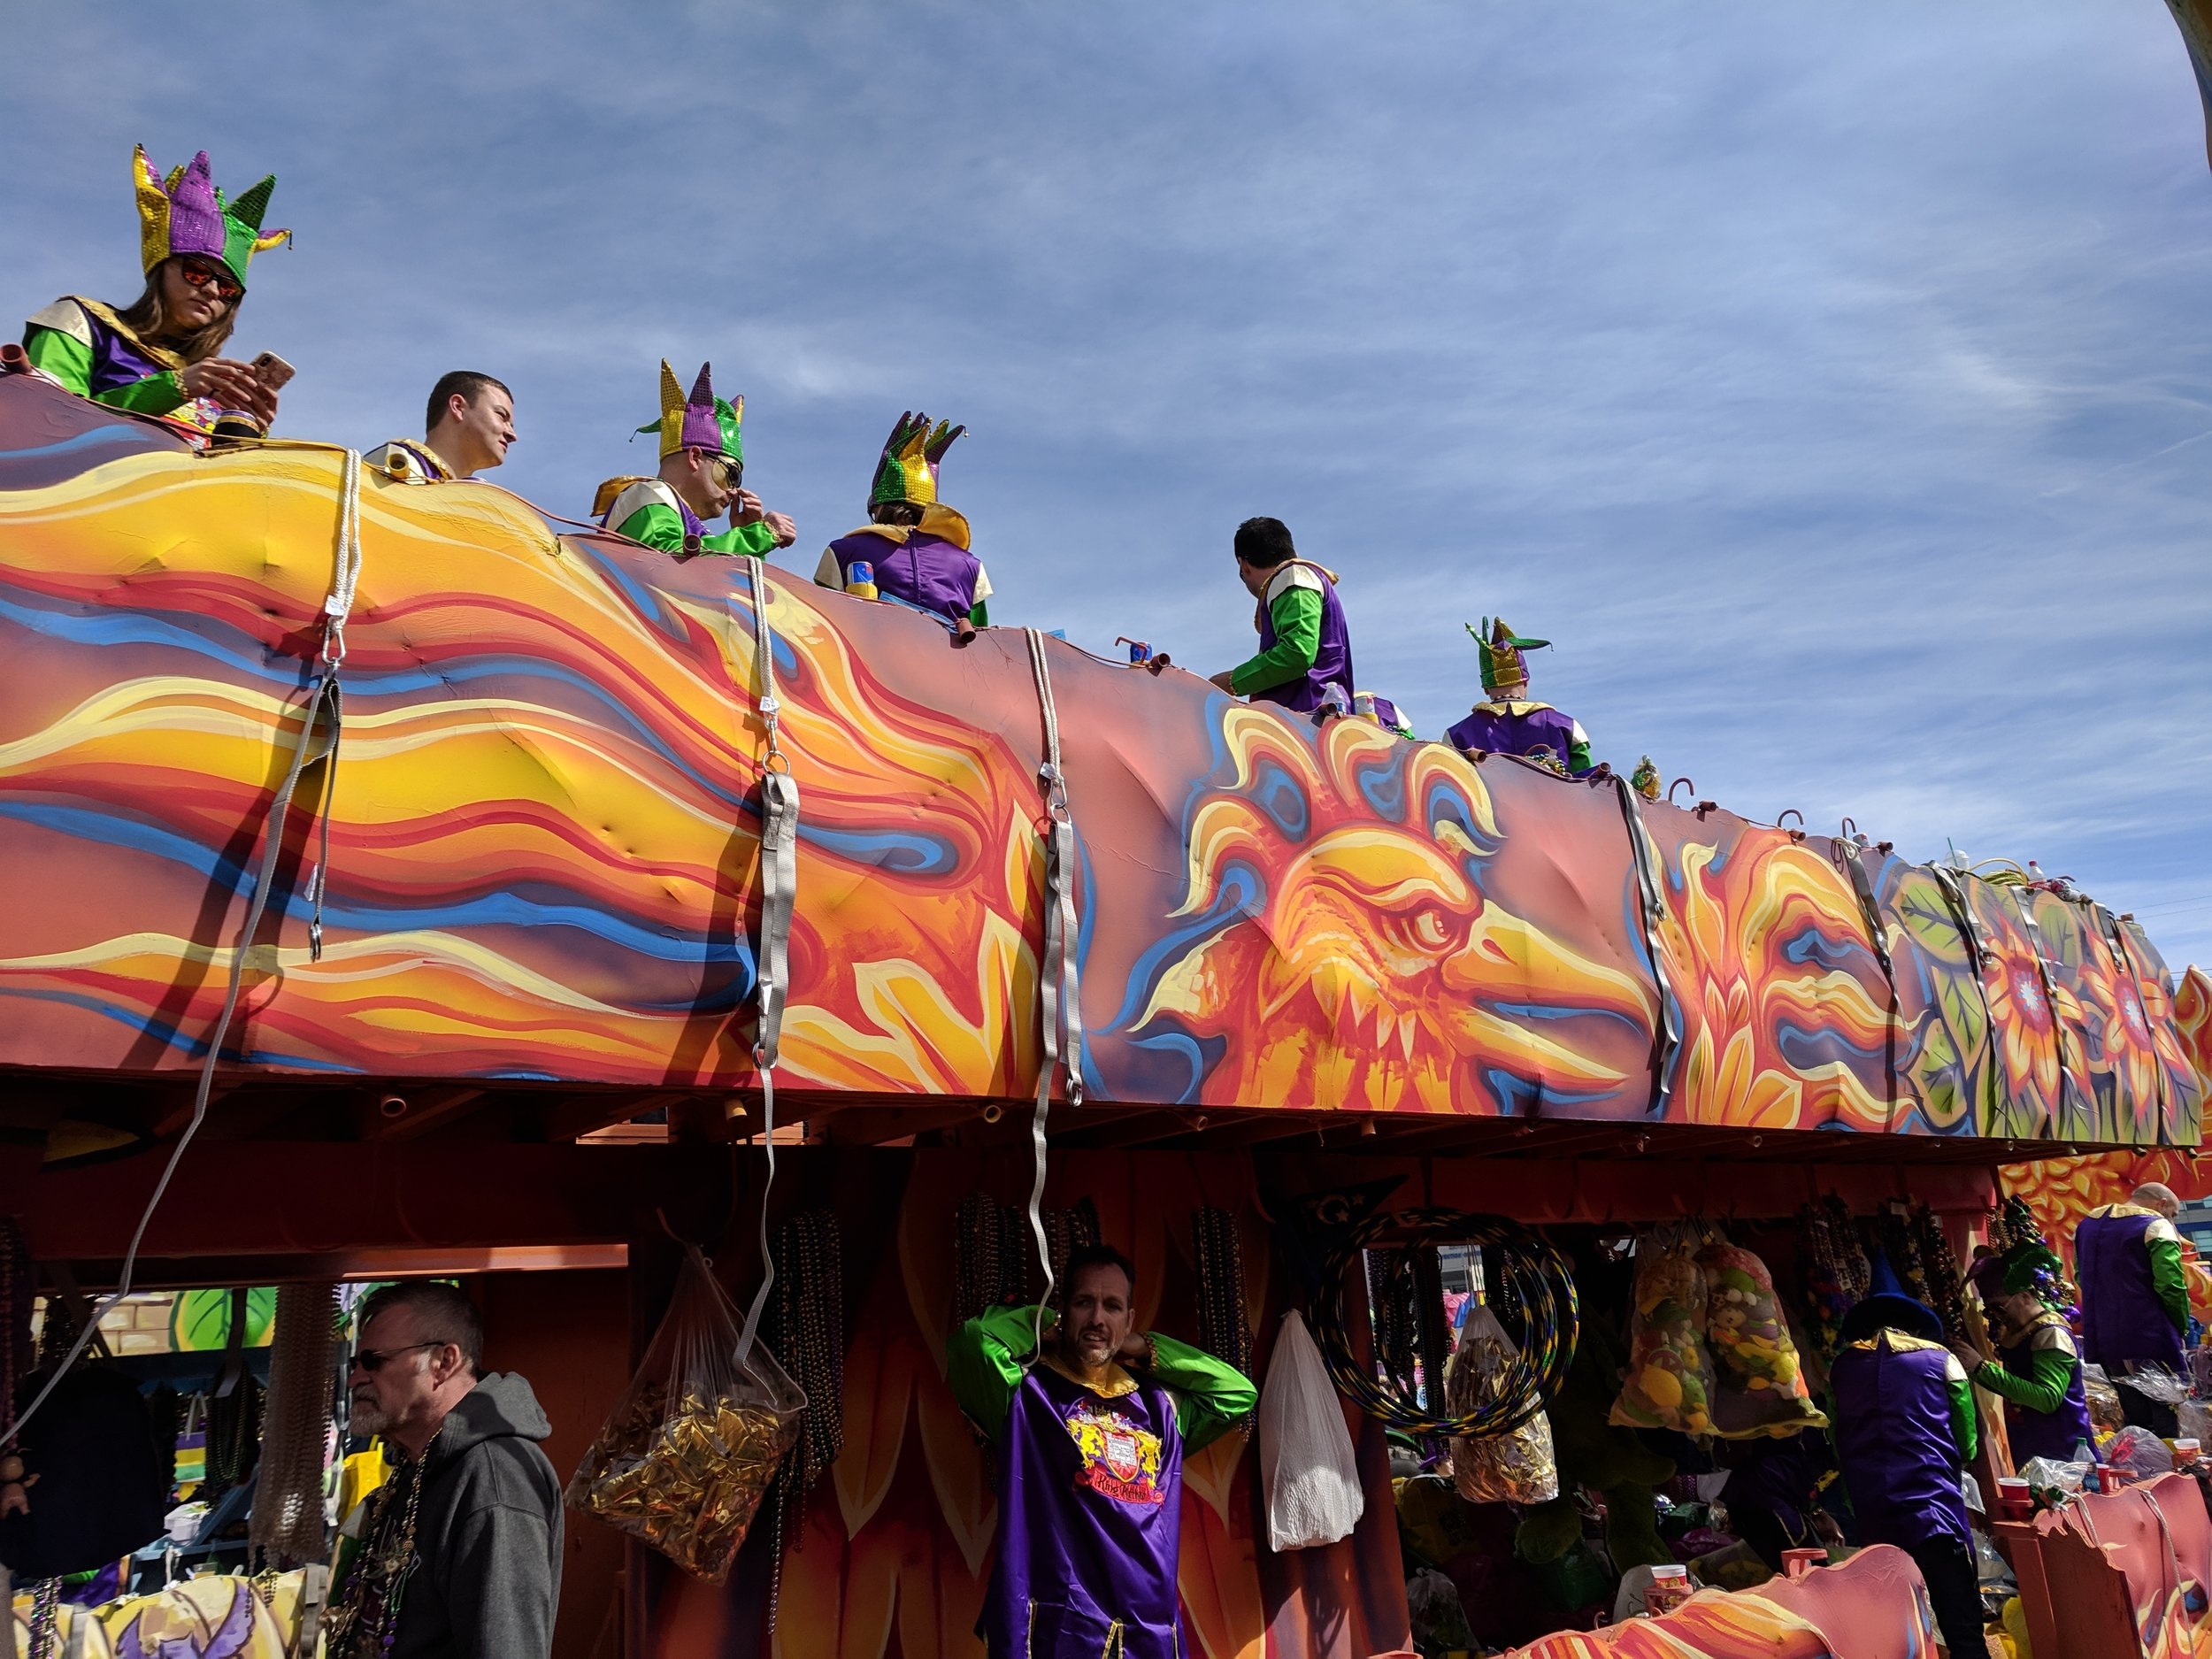 The riders on the top of this float indicate that they have their harnesses ready to wear.